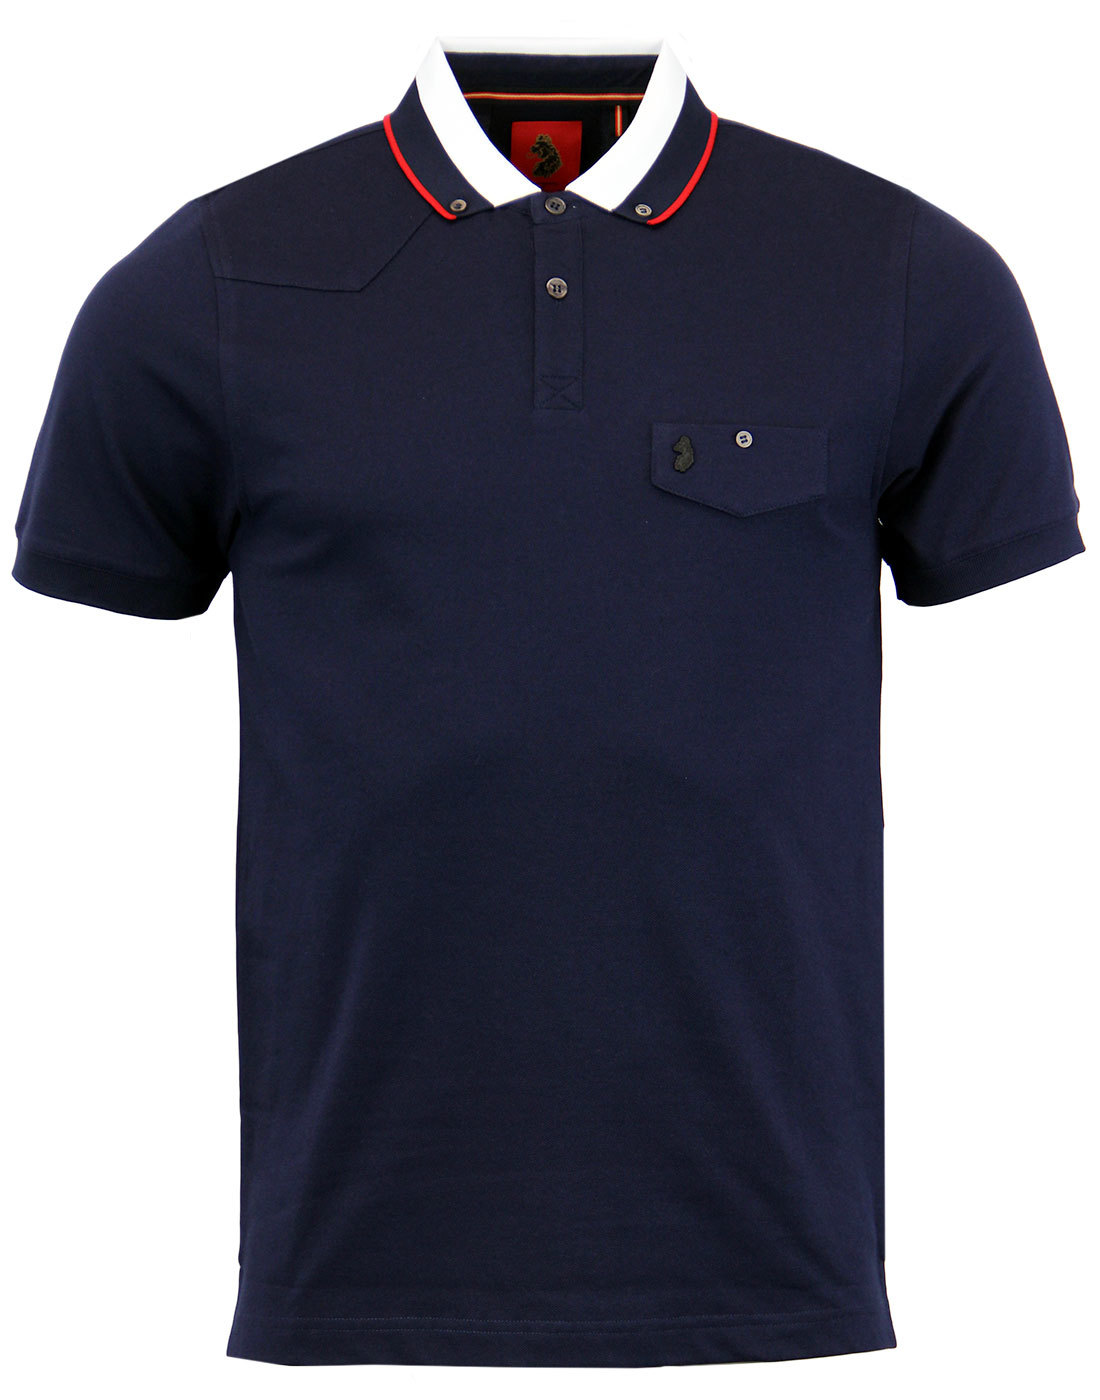 Airbright LUKE 1977 Retro Sixties Mod Tipped Polo